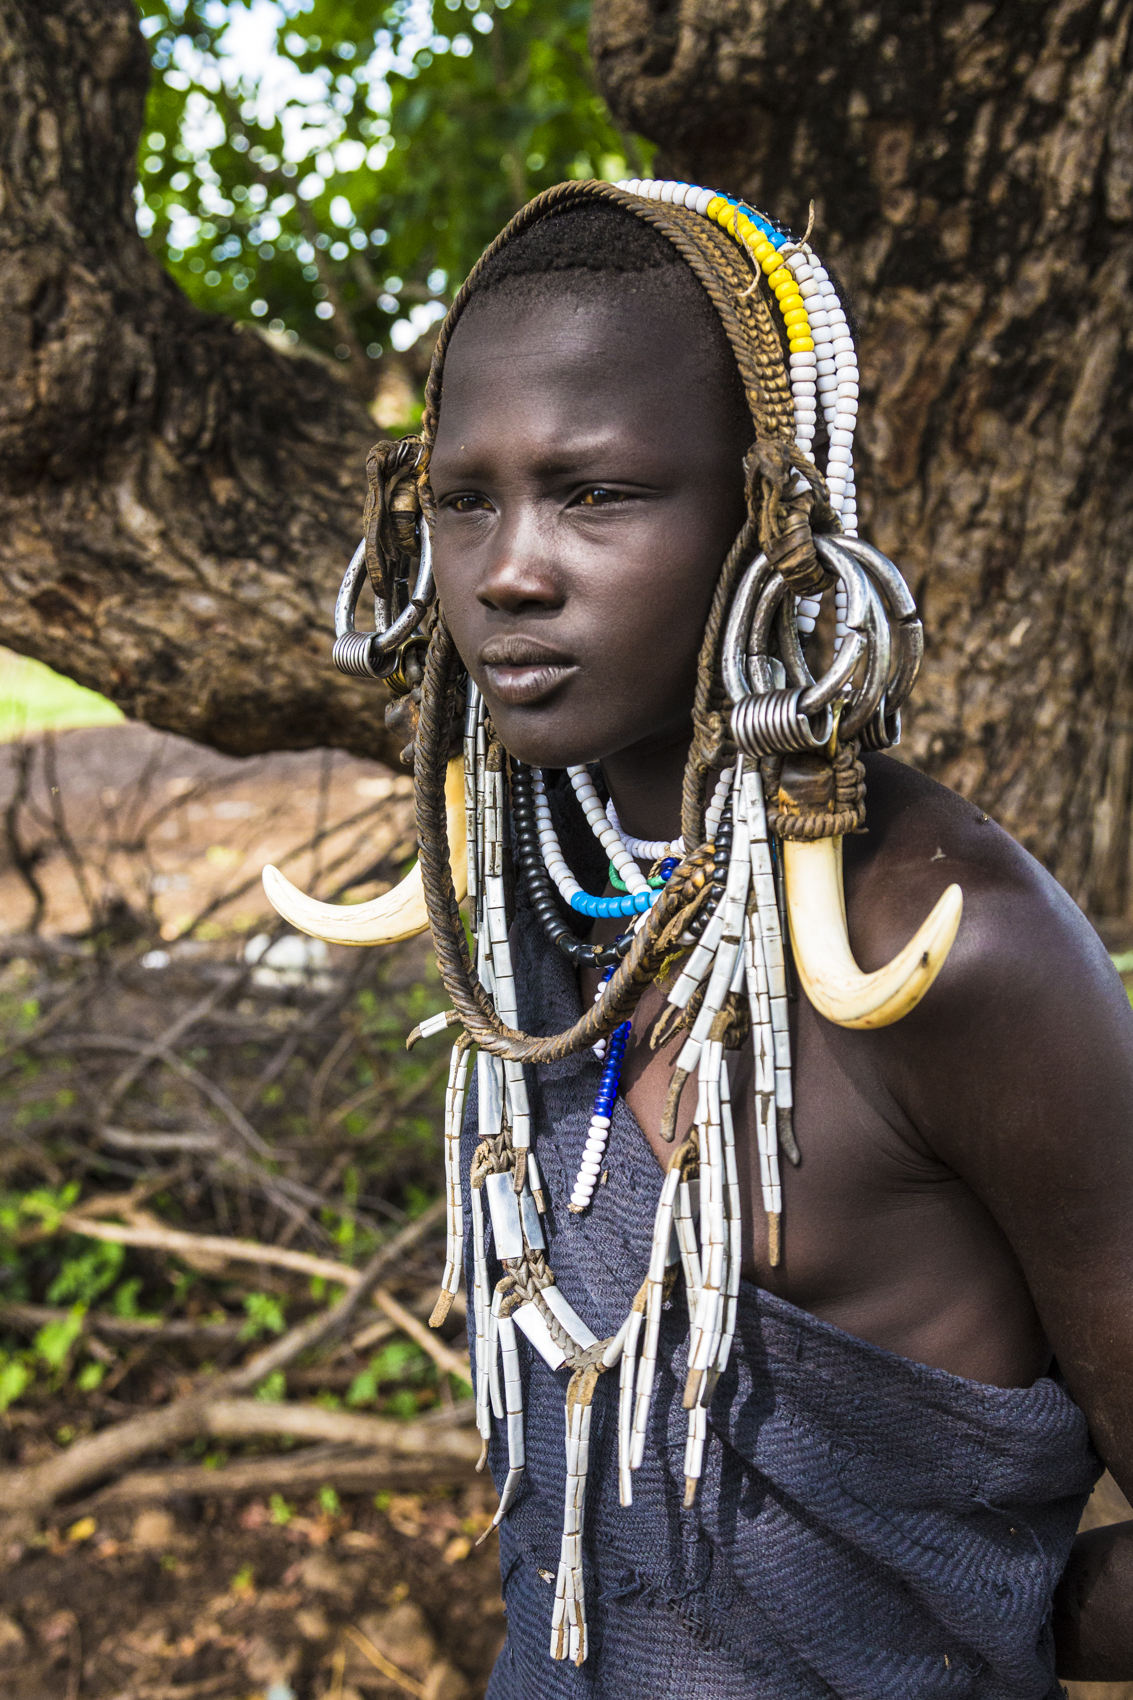 Young Mursi woman, Omo Valley